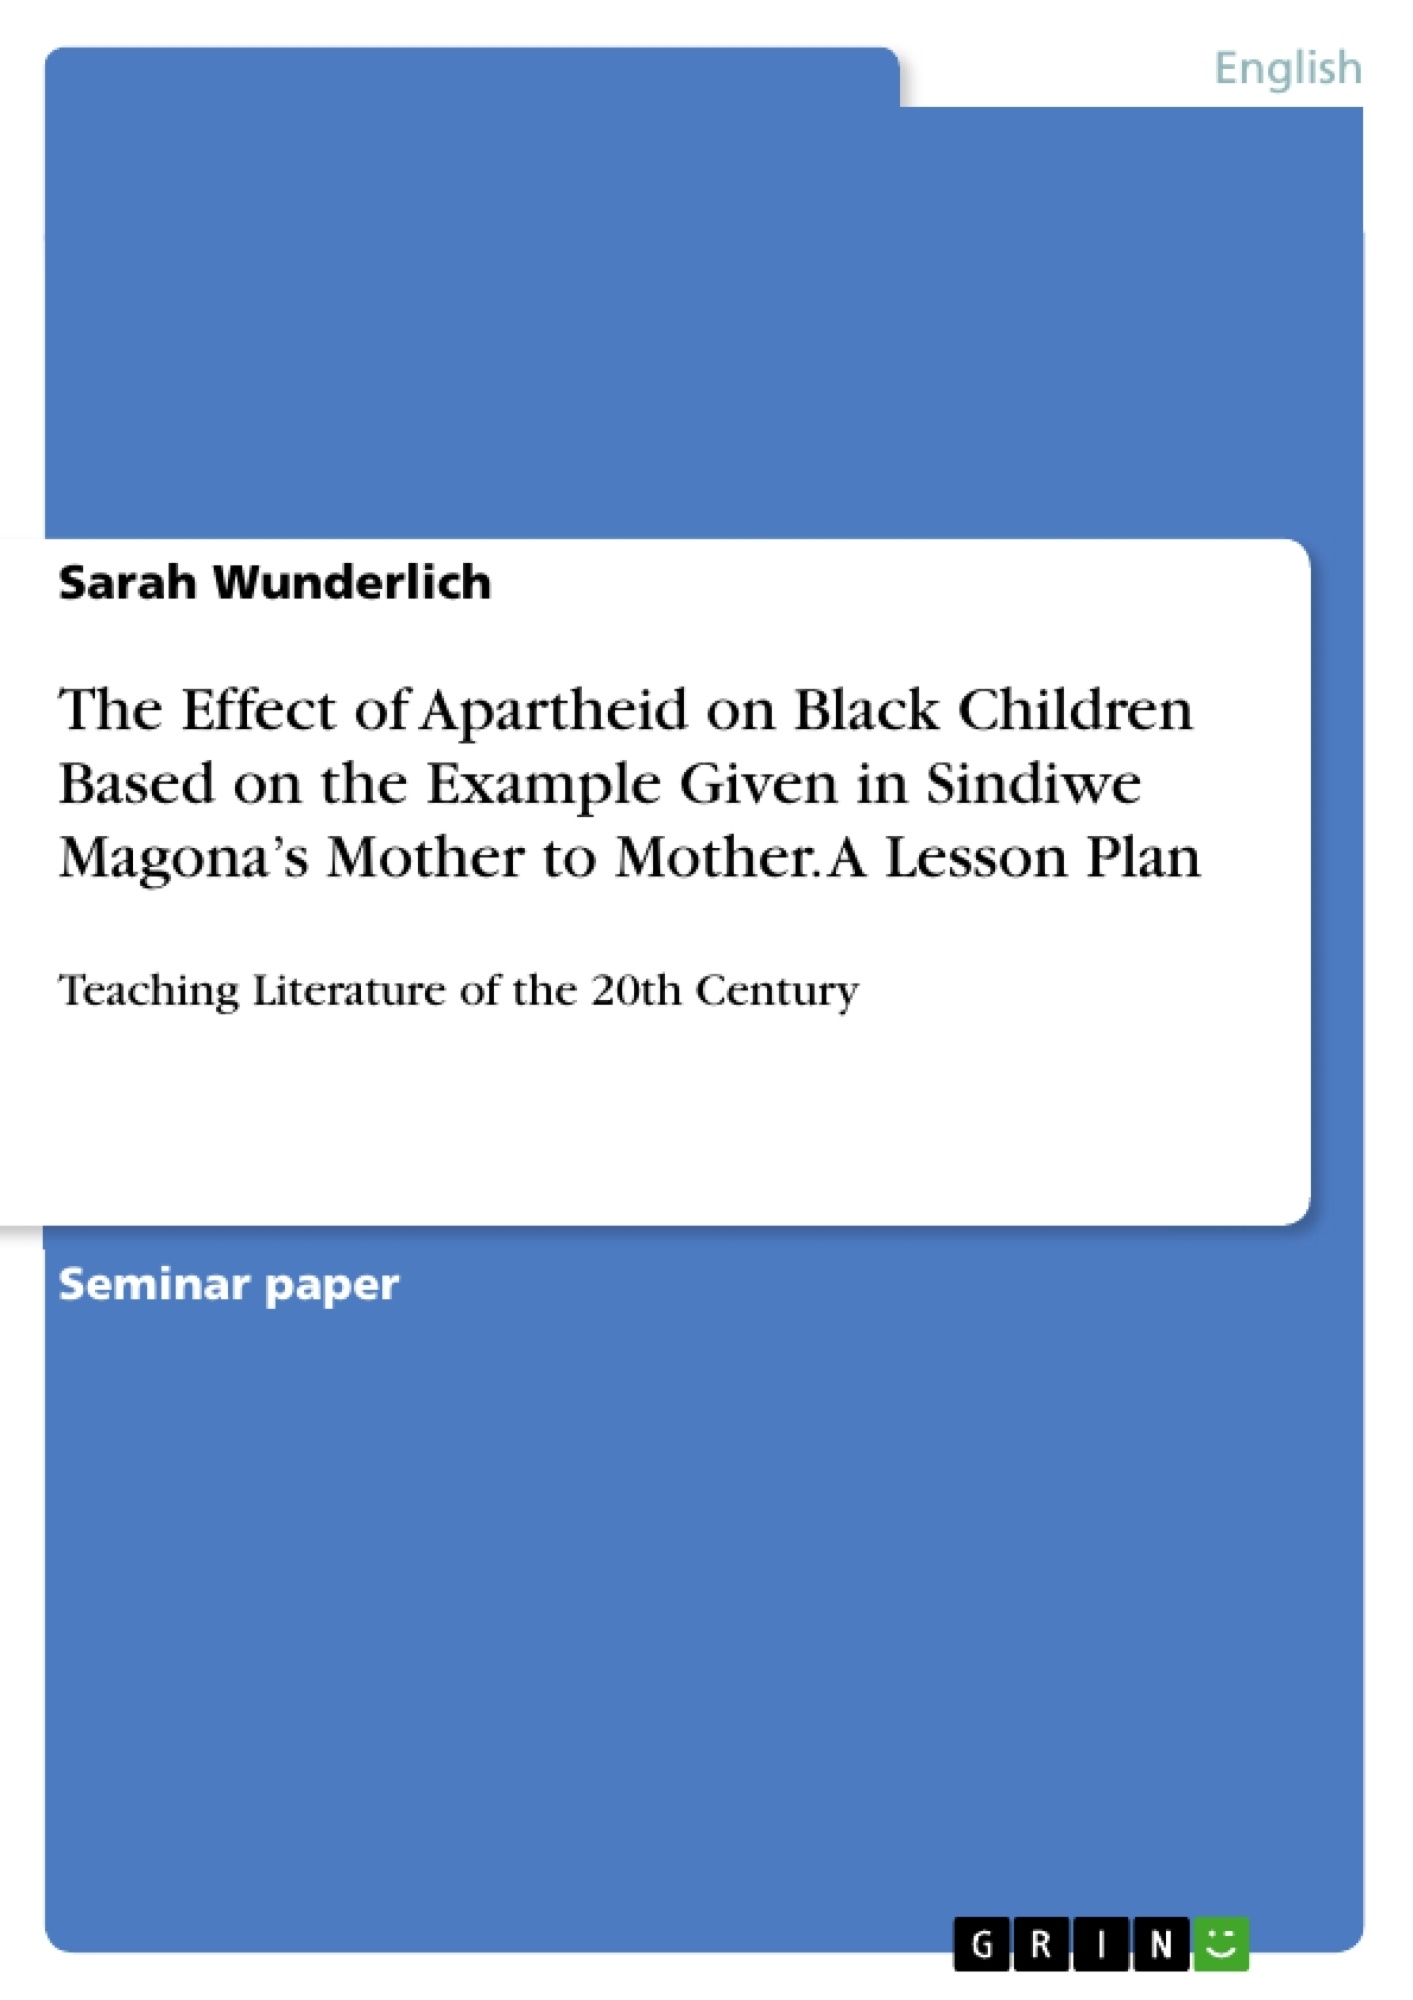 Title: The Effect of Apartheid on Black Children Based on the Example Given in Sindiwe Magona's Mother to Mother. A Lesson Plan